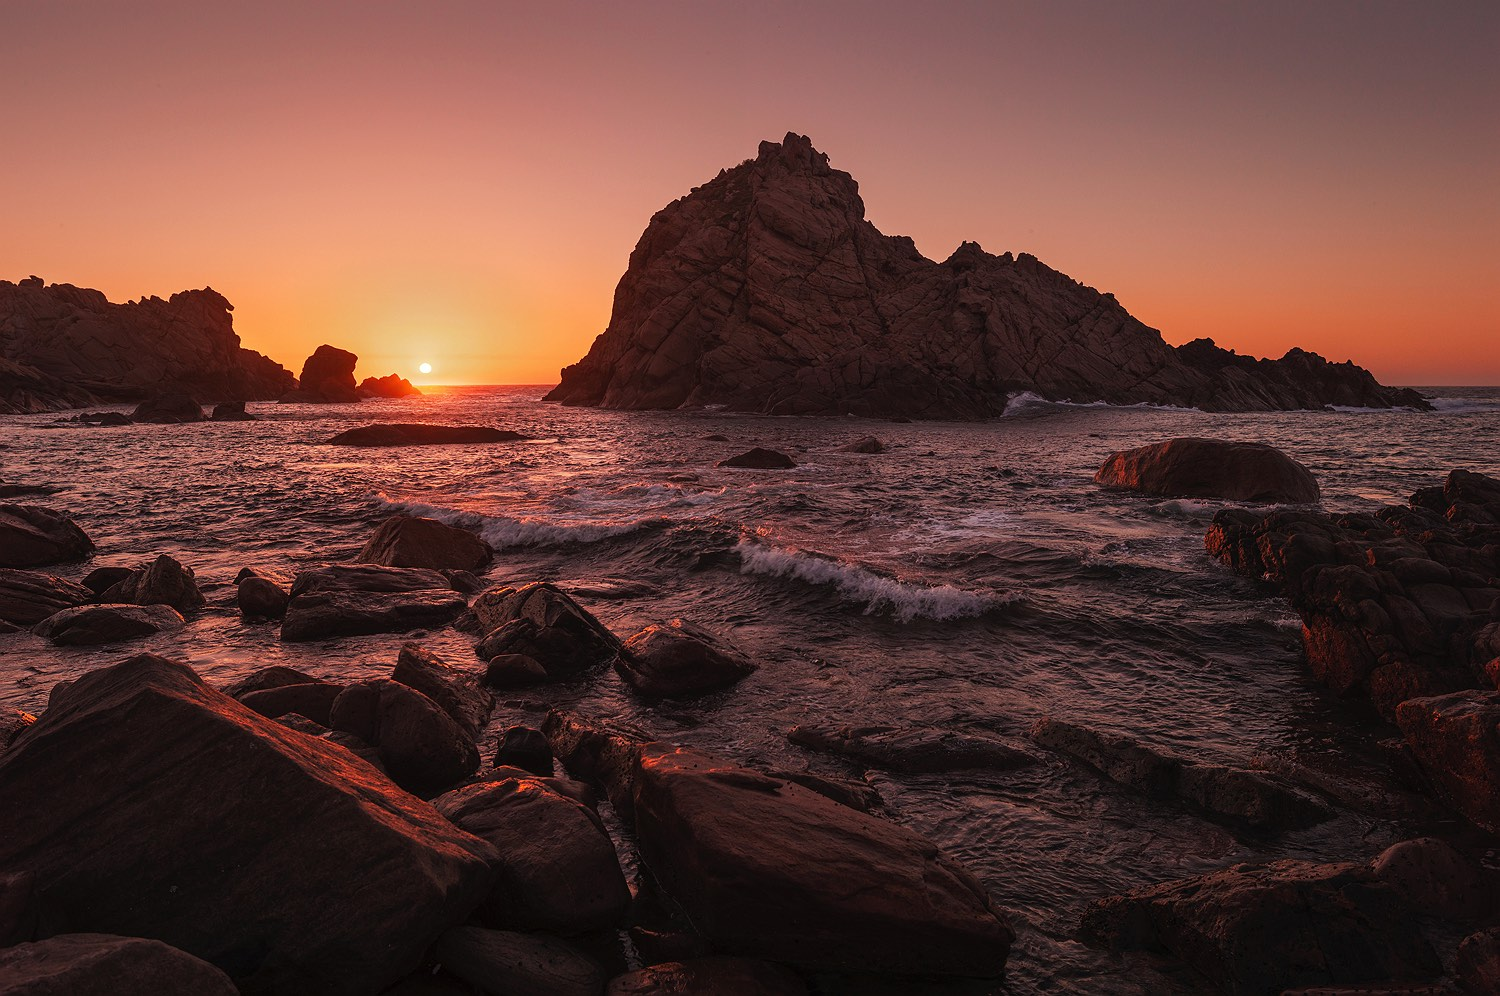 09_sunset-sugarloaf_rock_south-west_western-australia_rob-dose